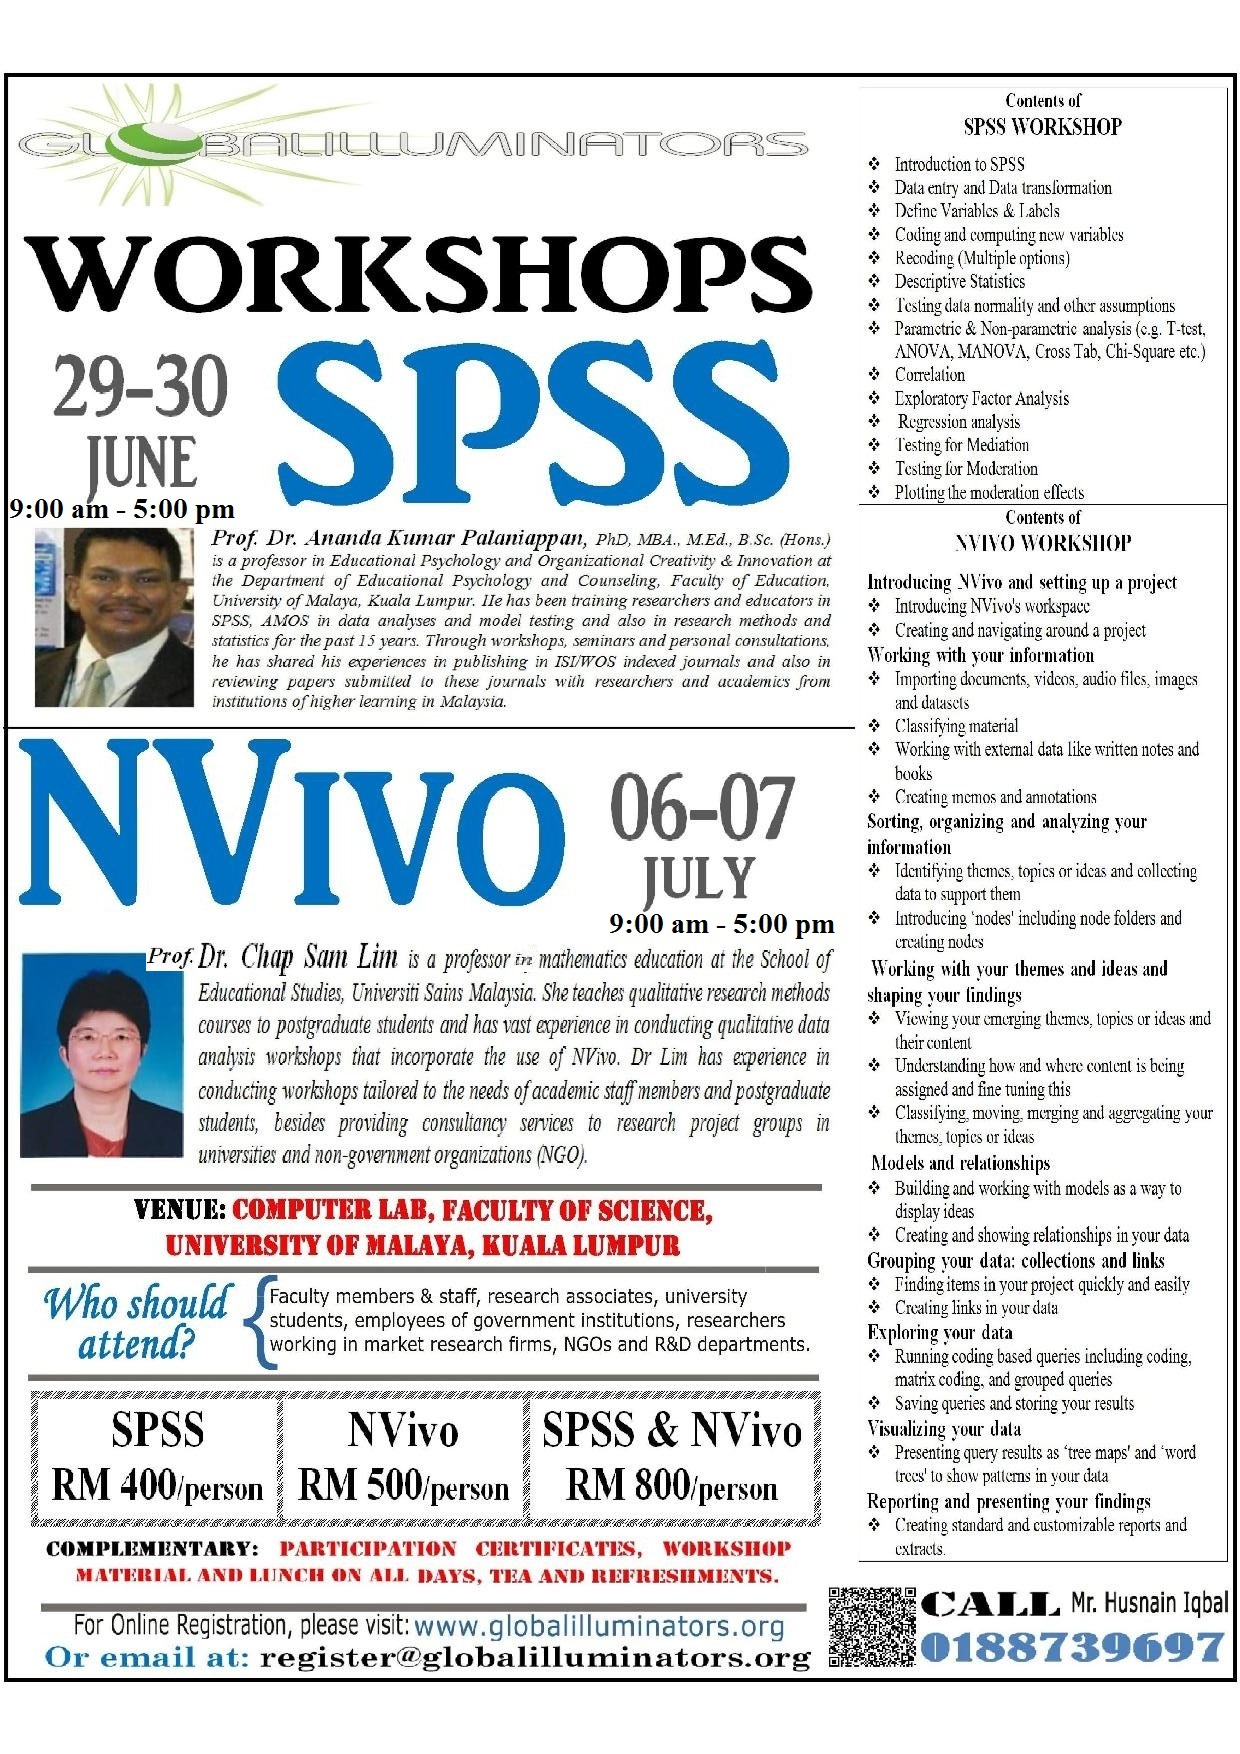 Nvivo-SPSS-poster-1